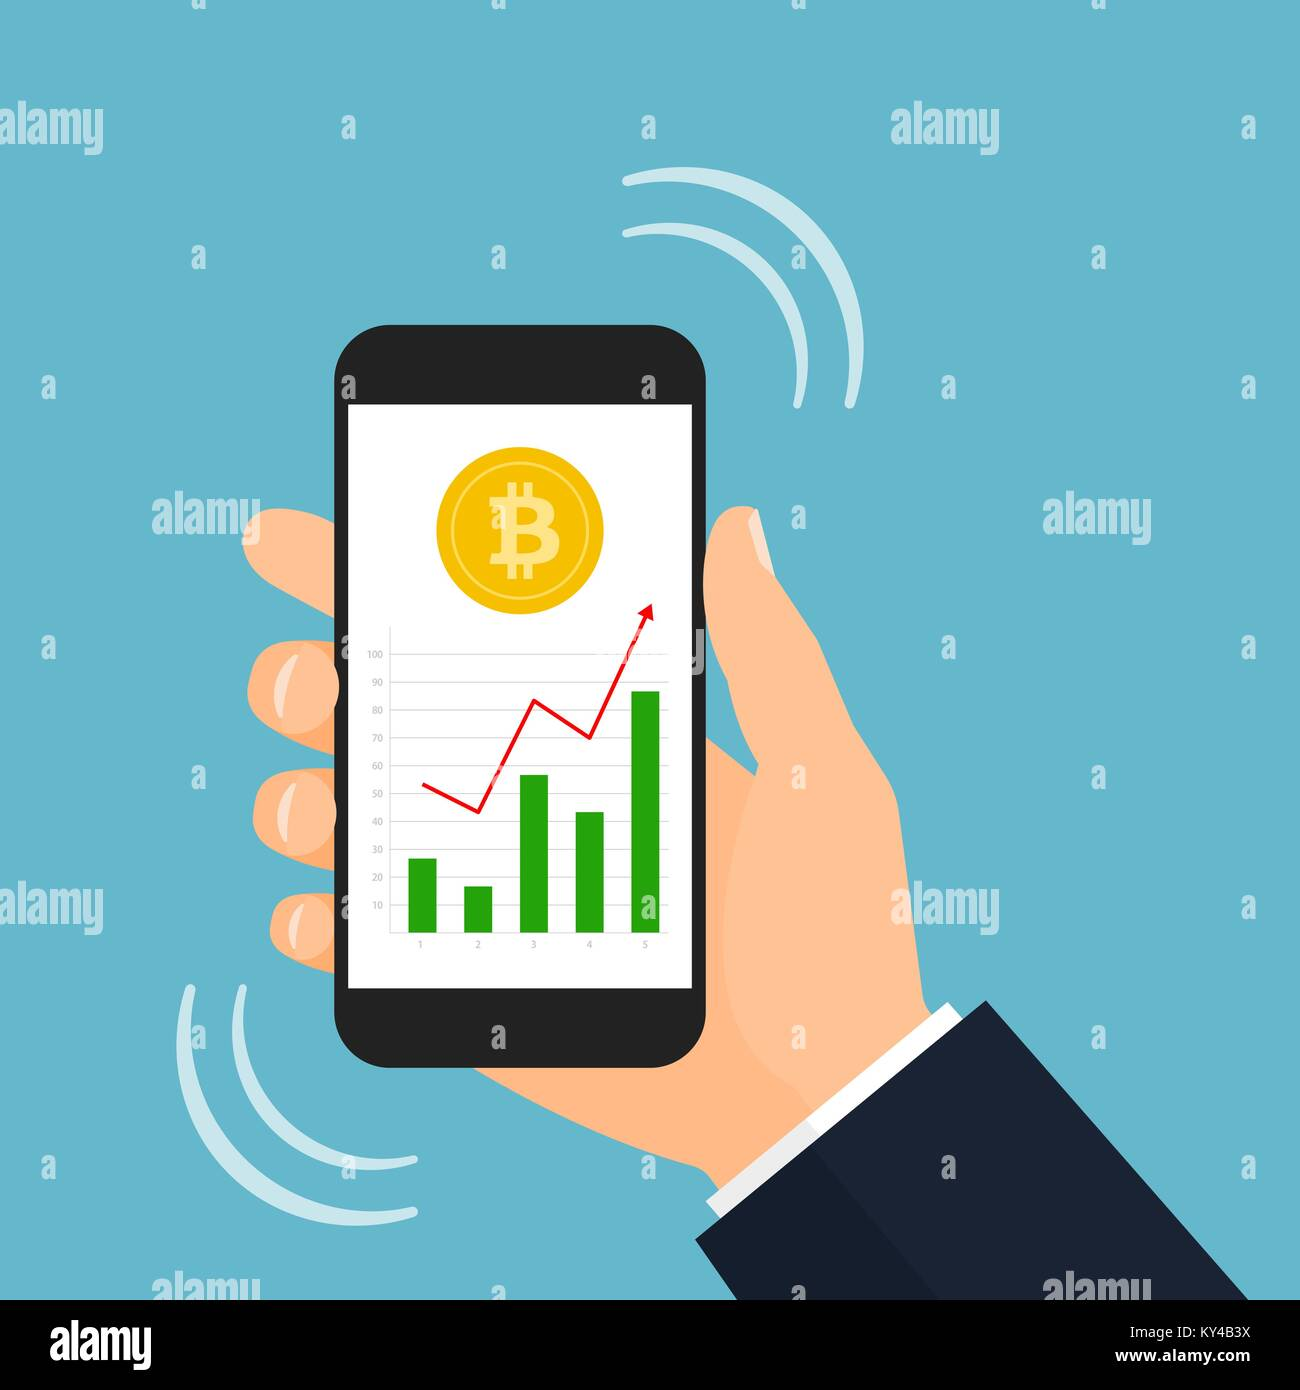 Bitcoin trading stock photos bitcoin trading stock images alamy bitcoin trading graphic on smartphone screen vector illustration stock image buycottarizona Choice Image